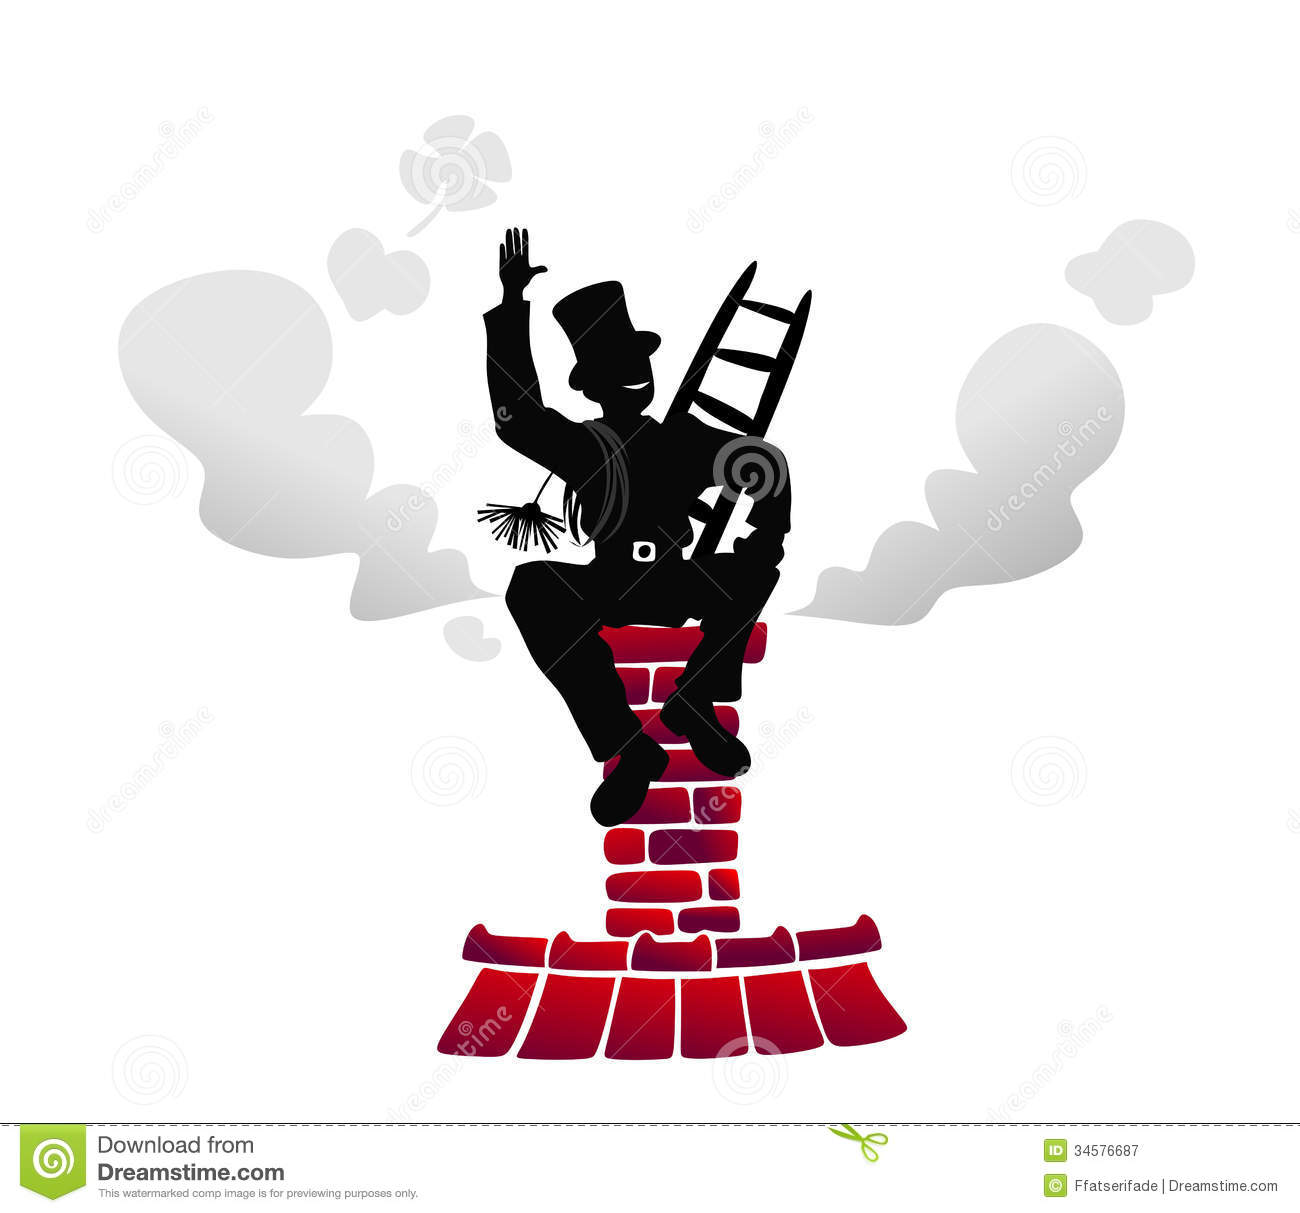 Chimney sweep clipart #11